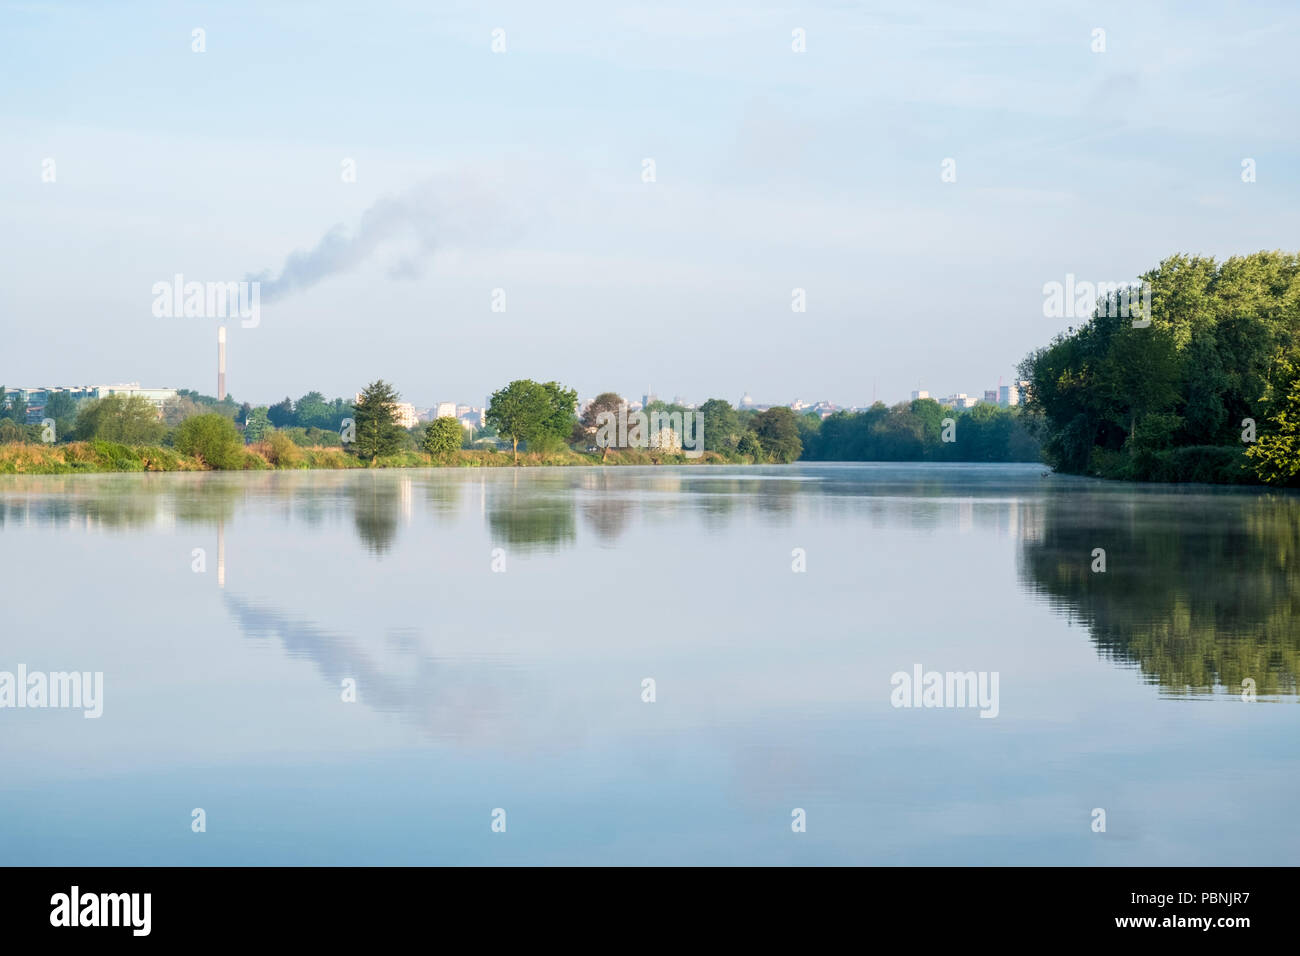 Nottingham skyline in the early morning seen from the east on the River Trent, Nottinghamshire, England, UK - Stock Image